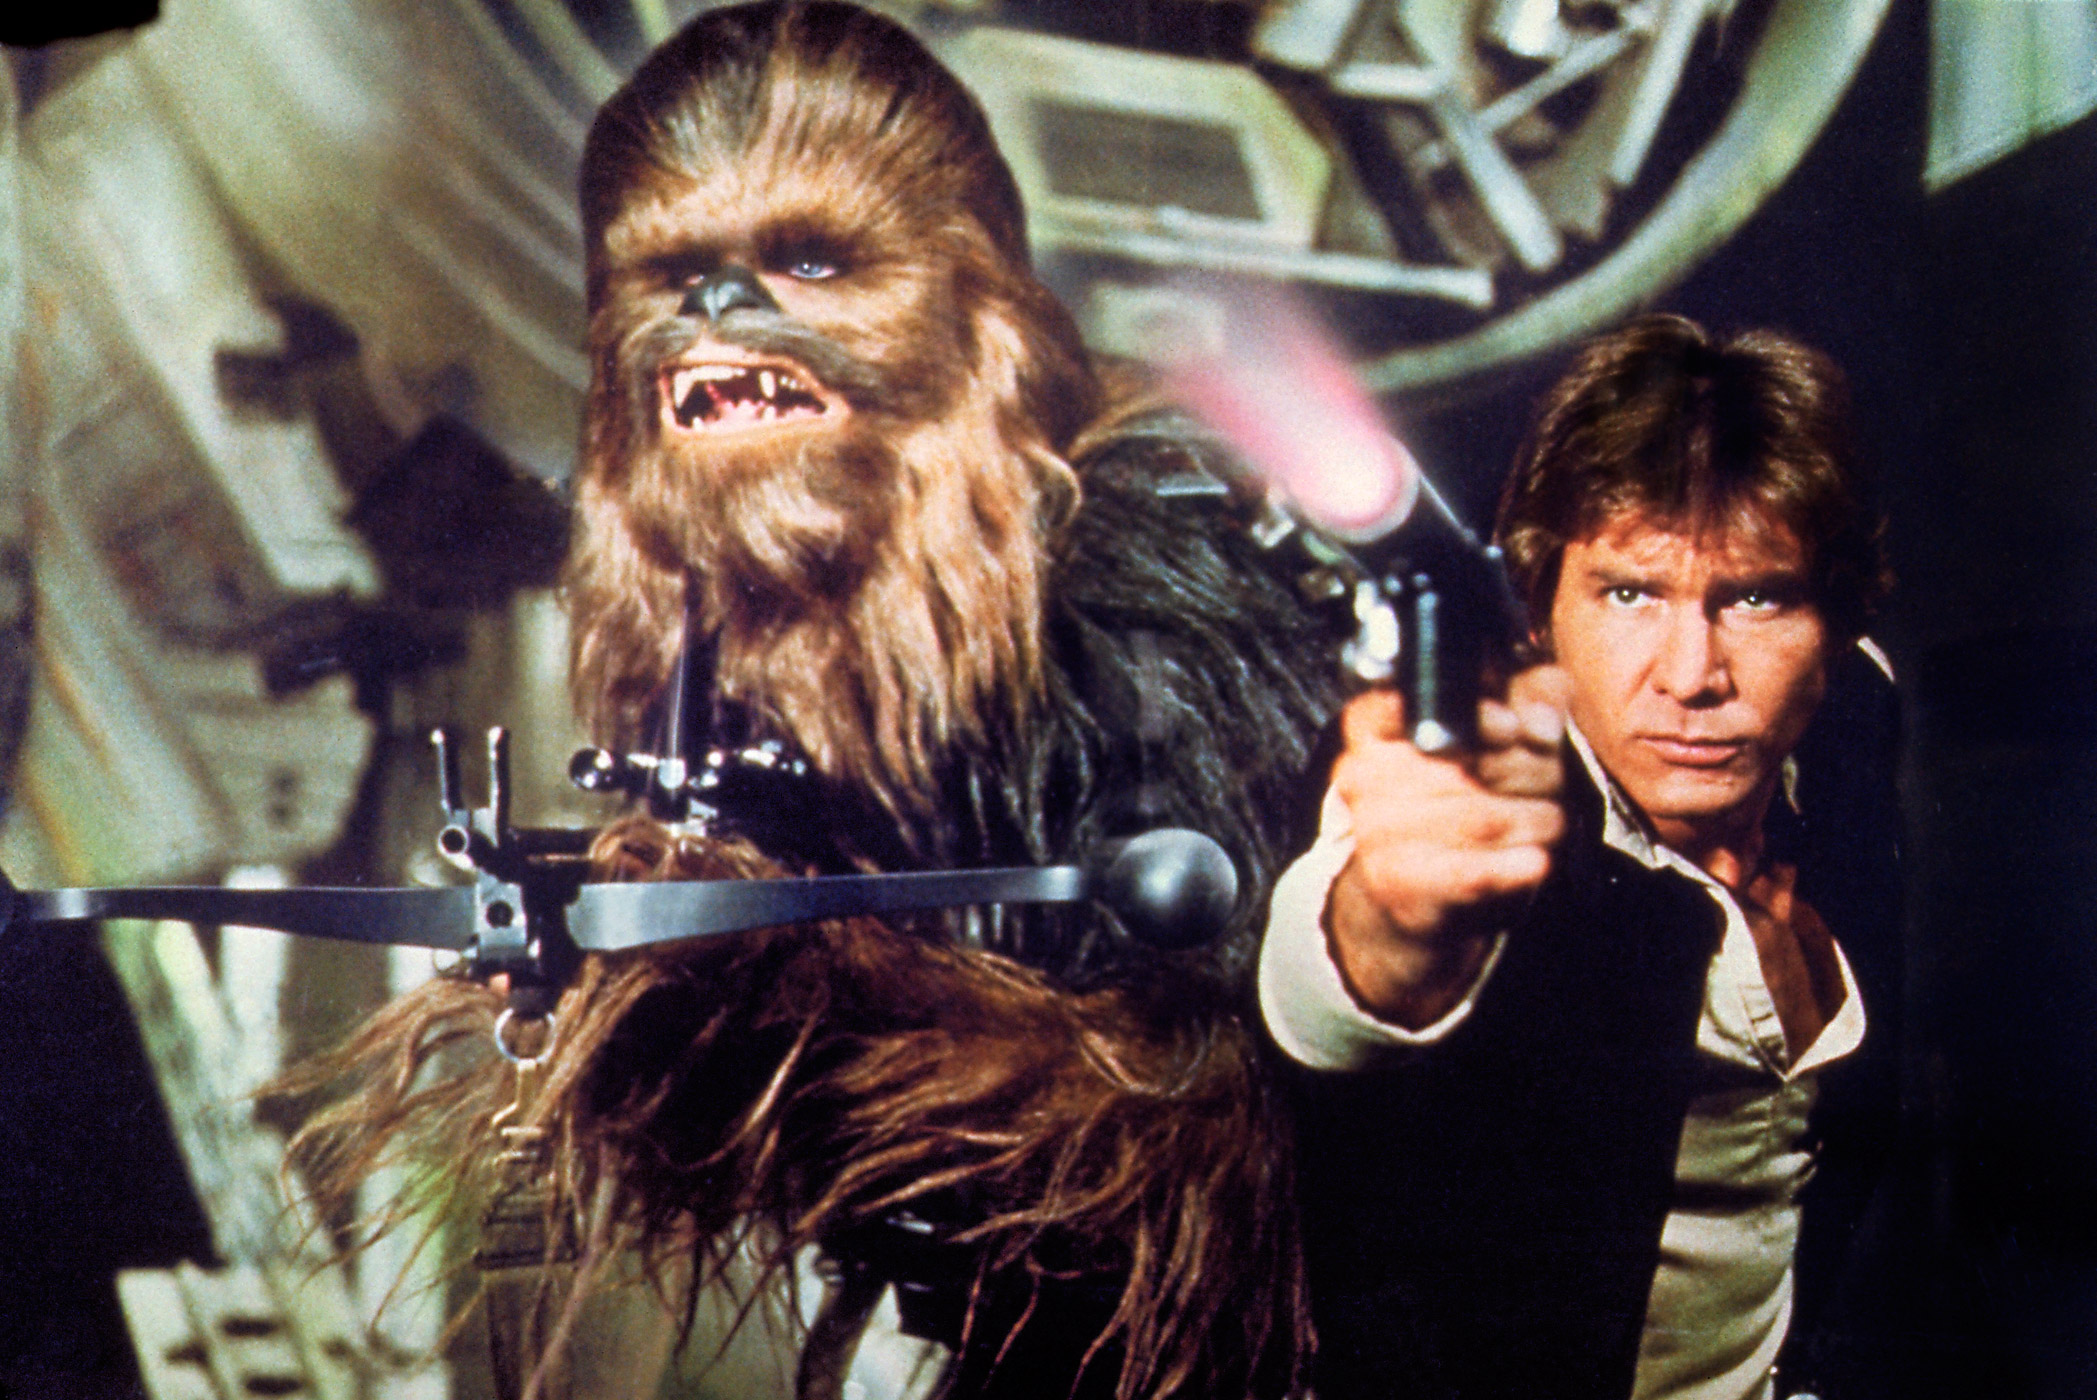 Harrison Ford stars as Han Solo in Star Wars